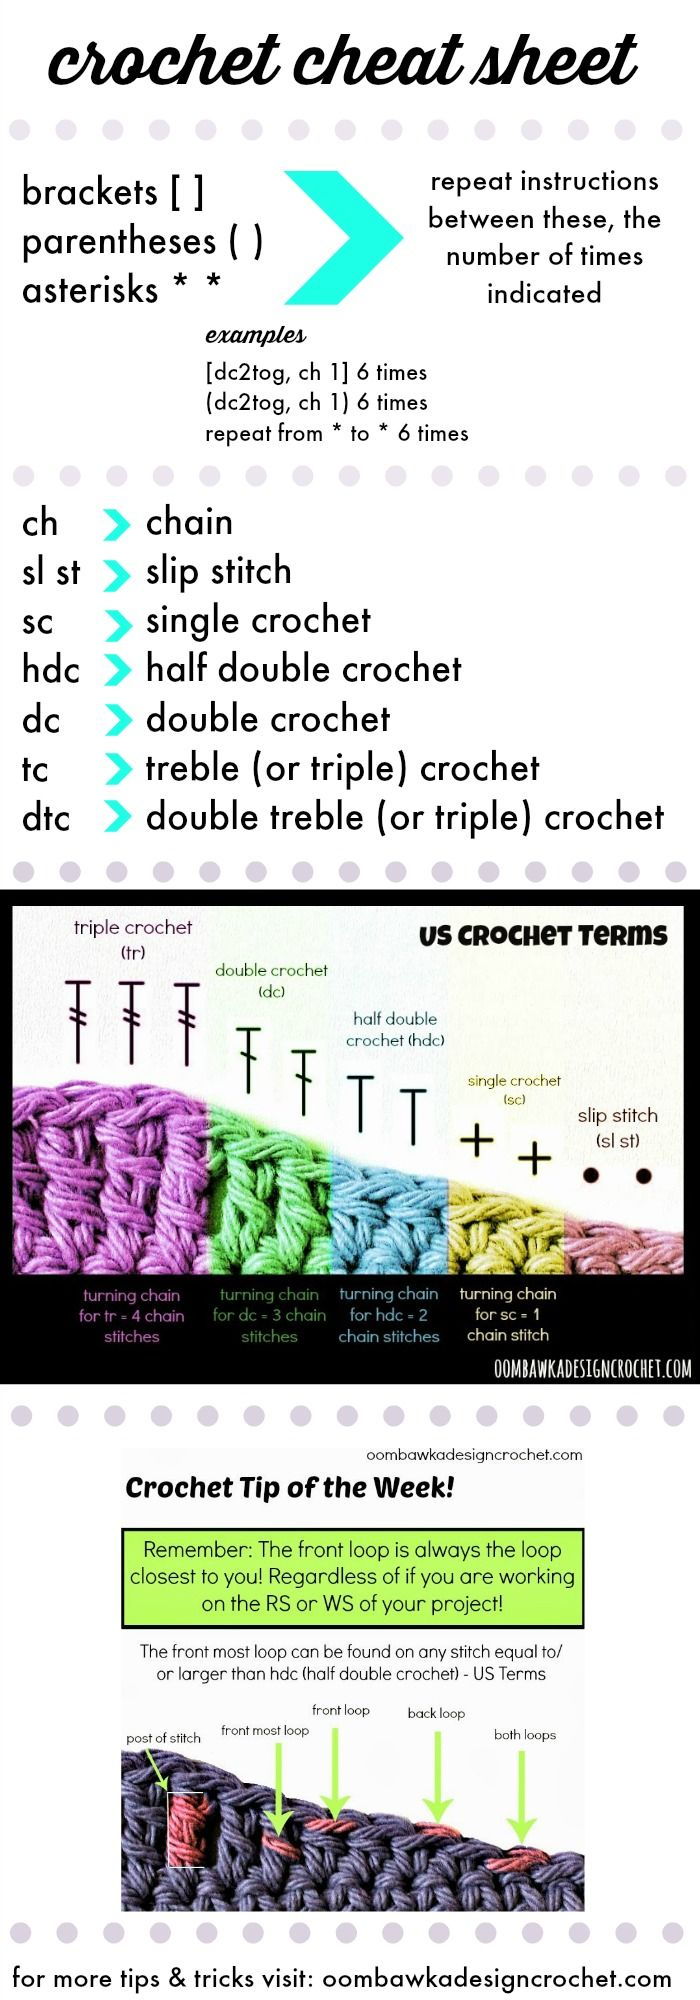 Crochet Cheat Sheet from Oombawka Design Tabla de medinas norteamericanas.